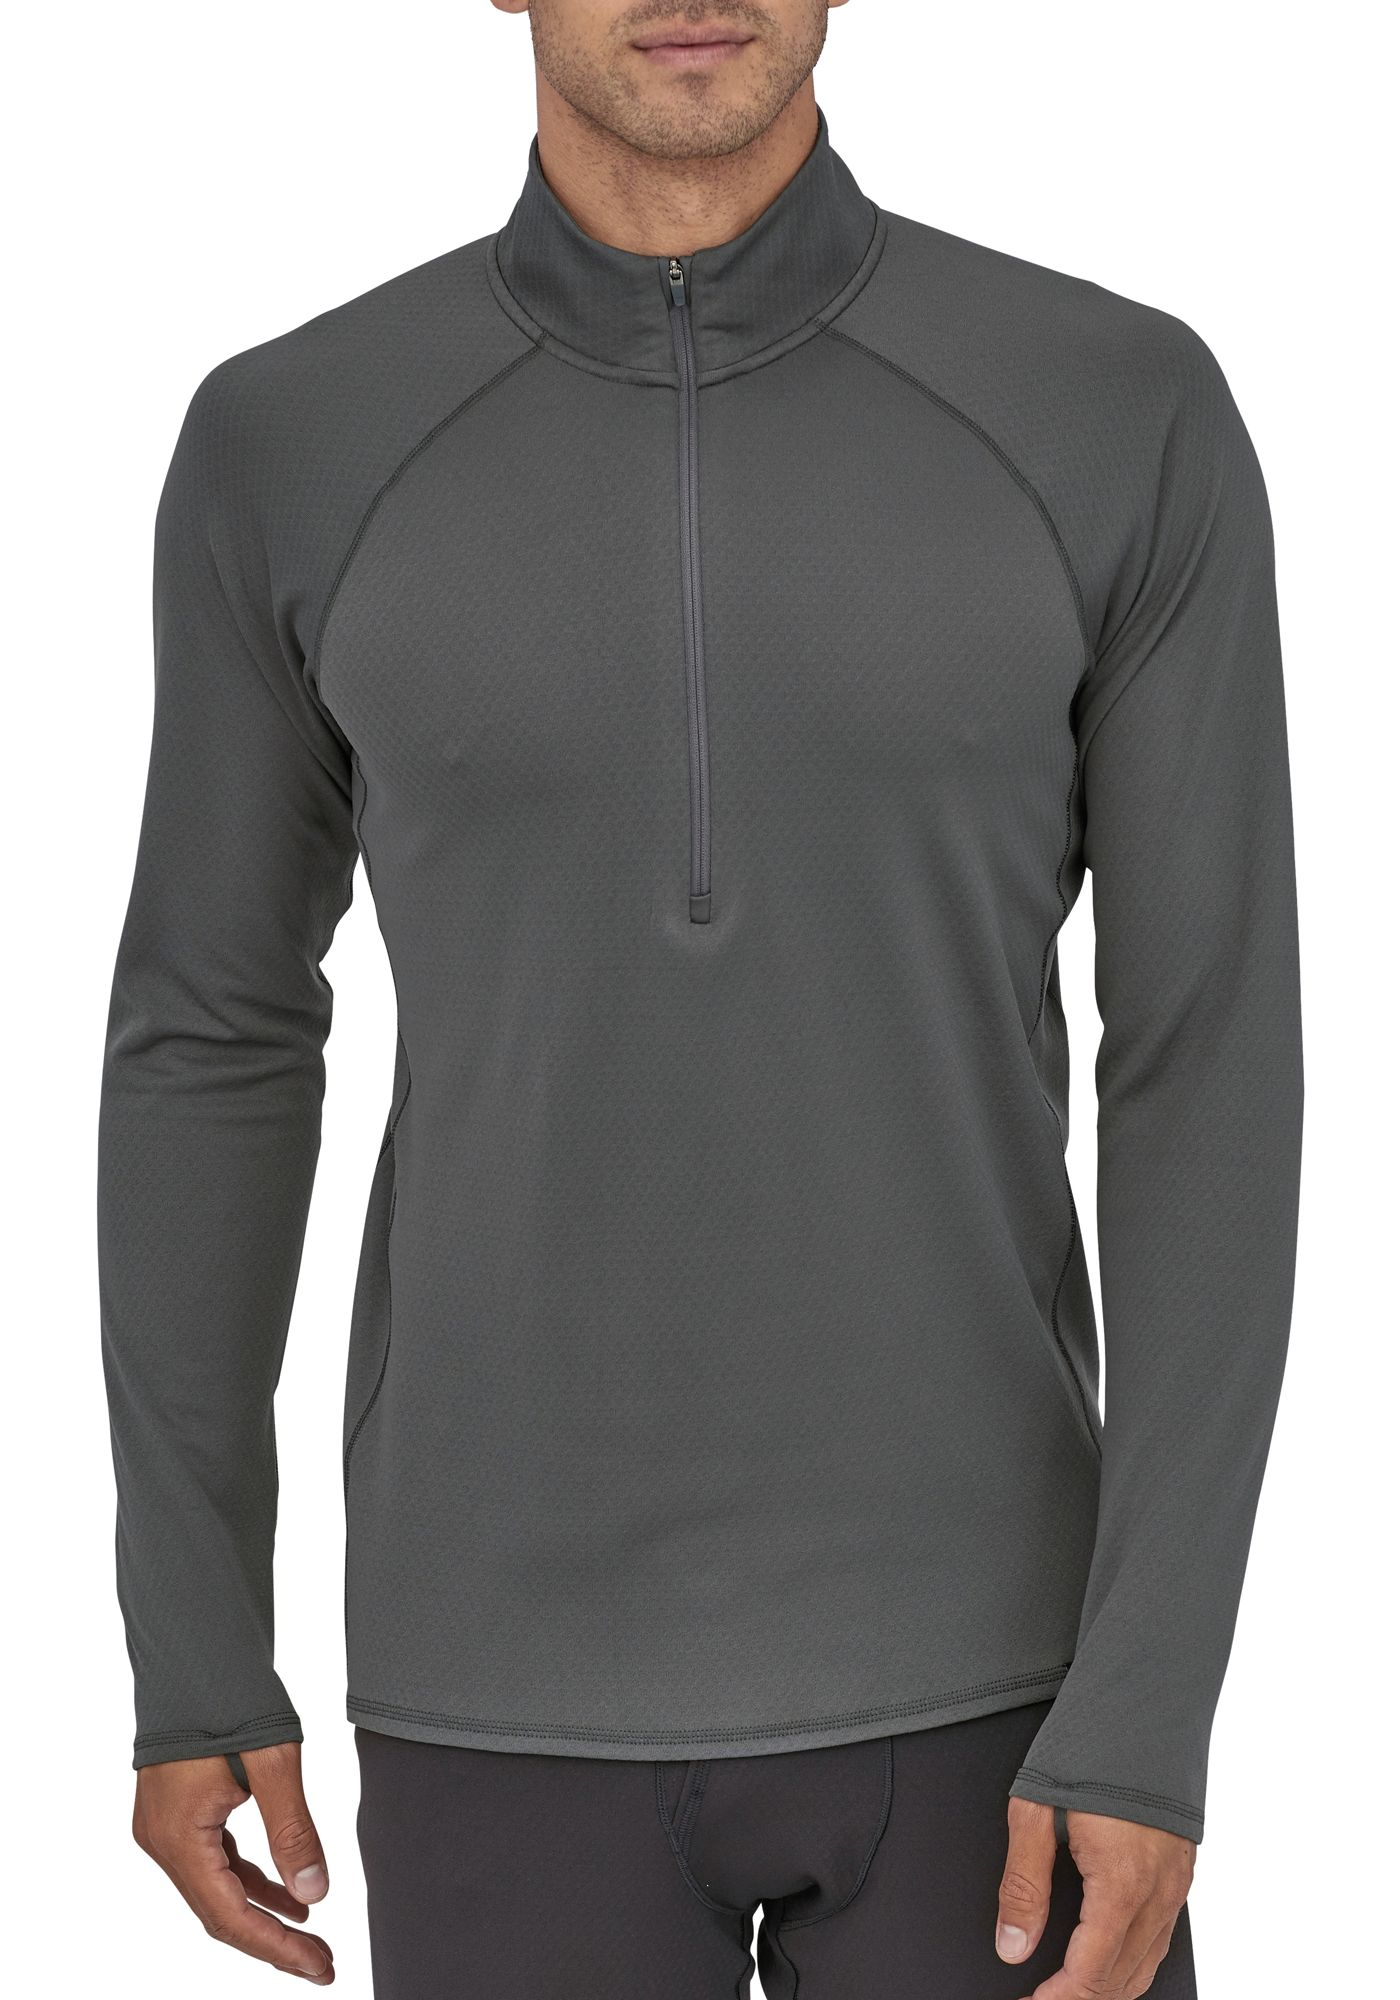 Patagonia Men's Capilene Midweight 1/2 Zip Baselayer